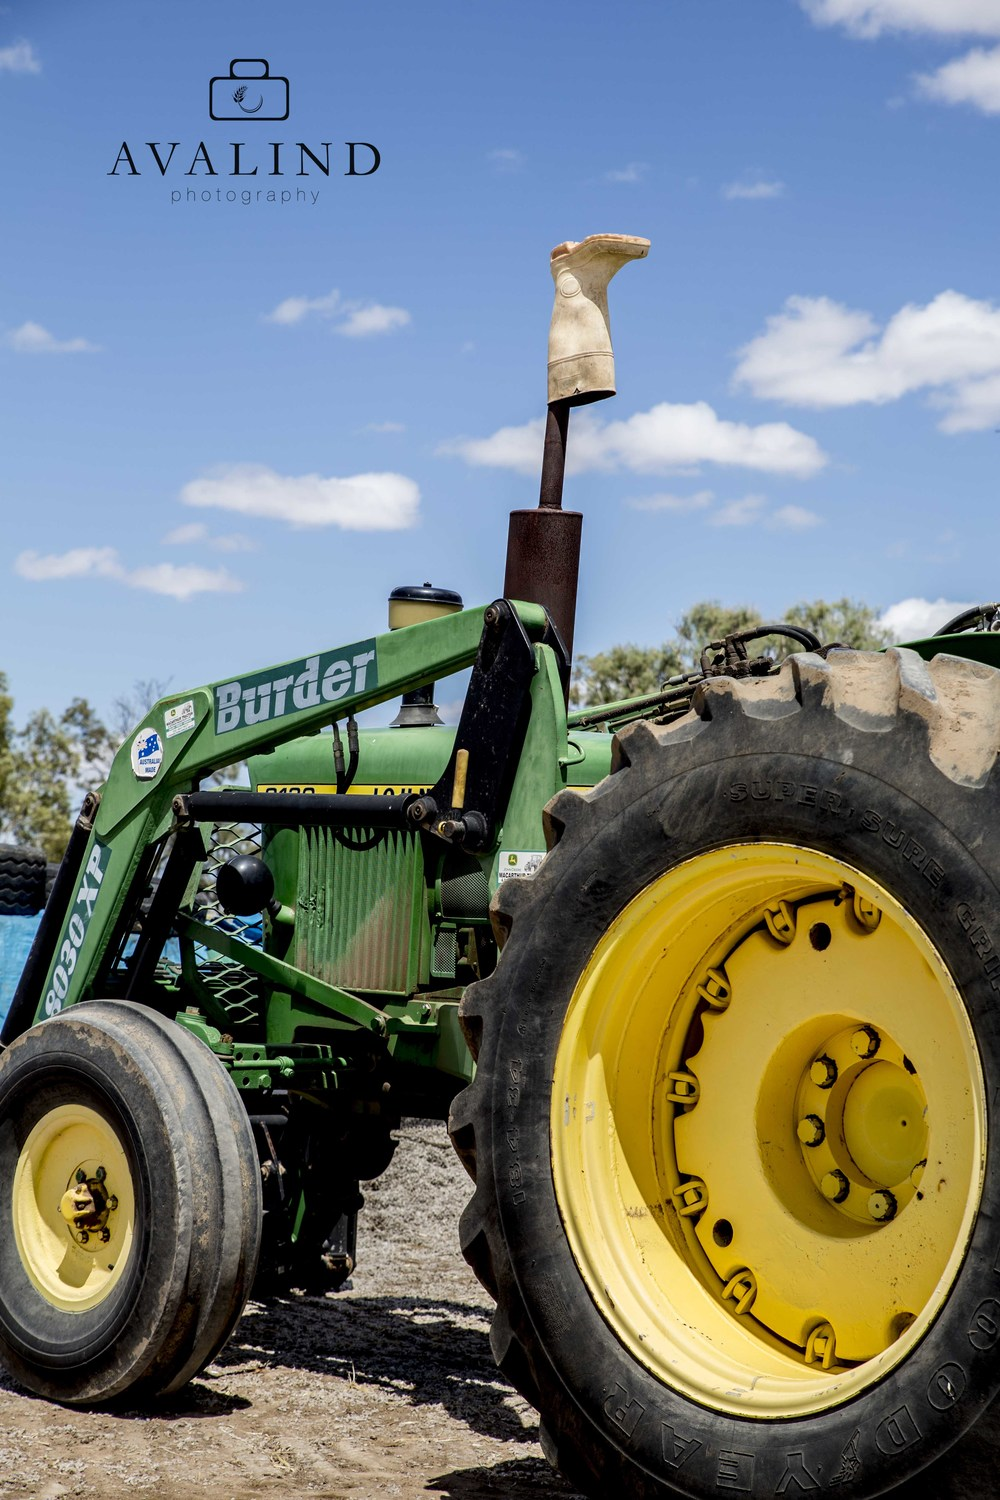 Don's tractor. A symbol of hope, the gumboot is there to stop any rain from going down the muffler...